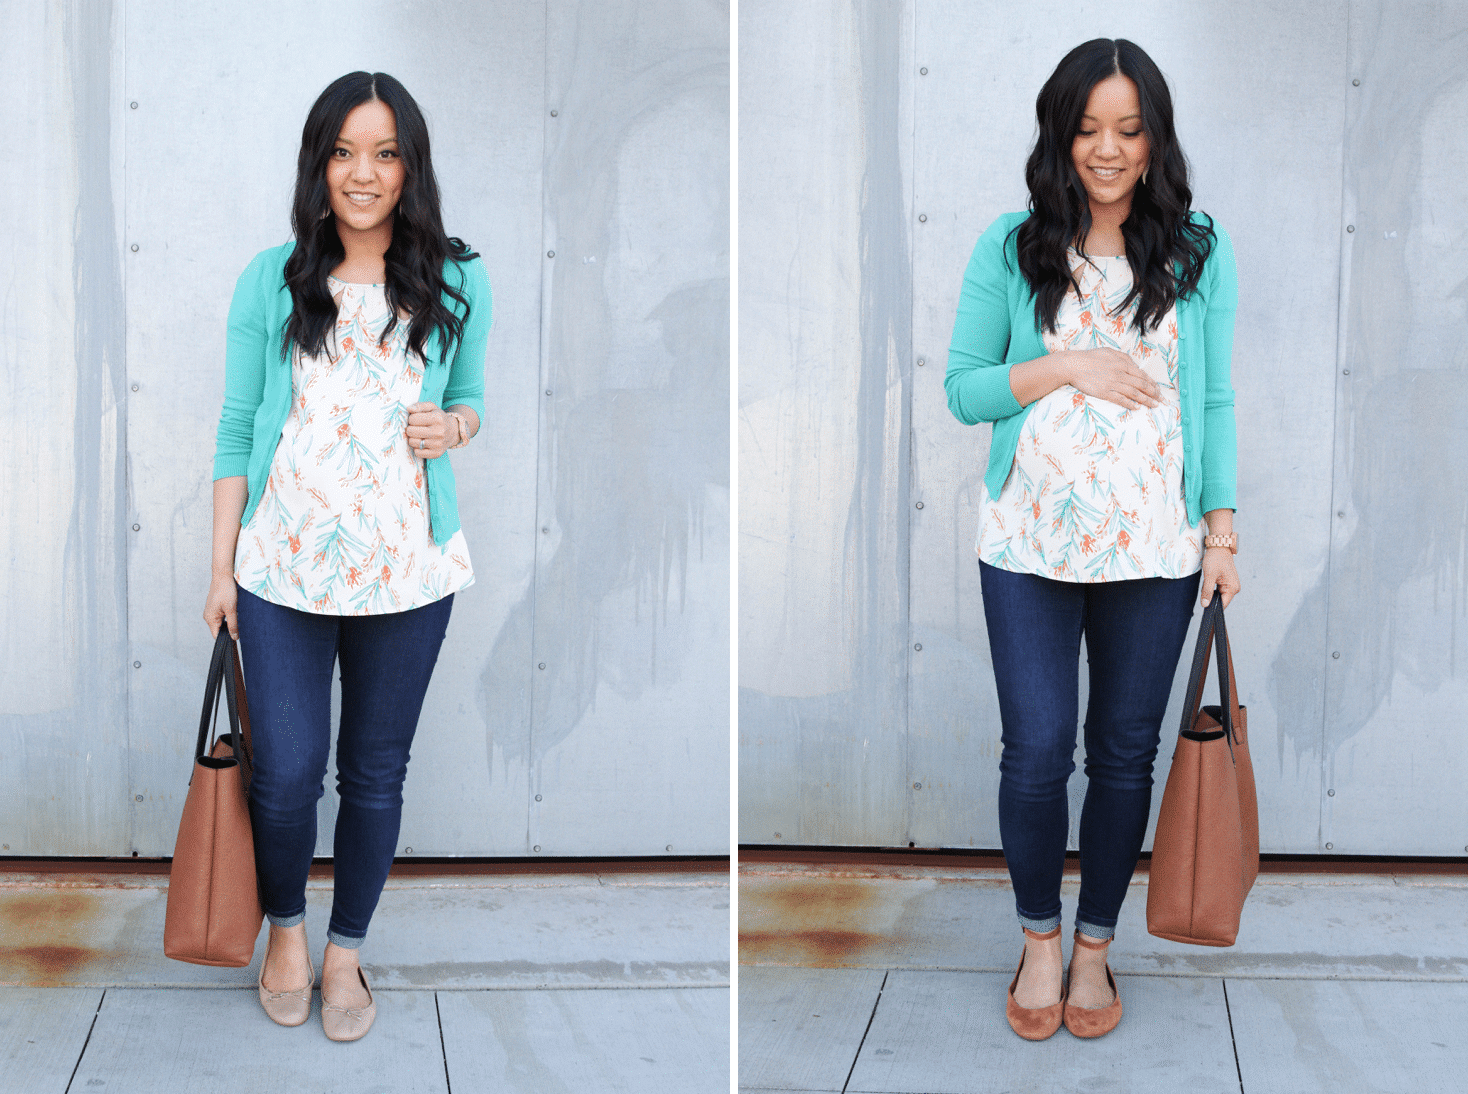 Using Colored Flats to Make Outfits Pop